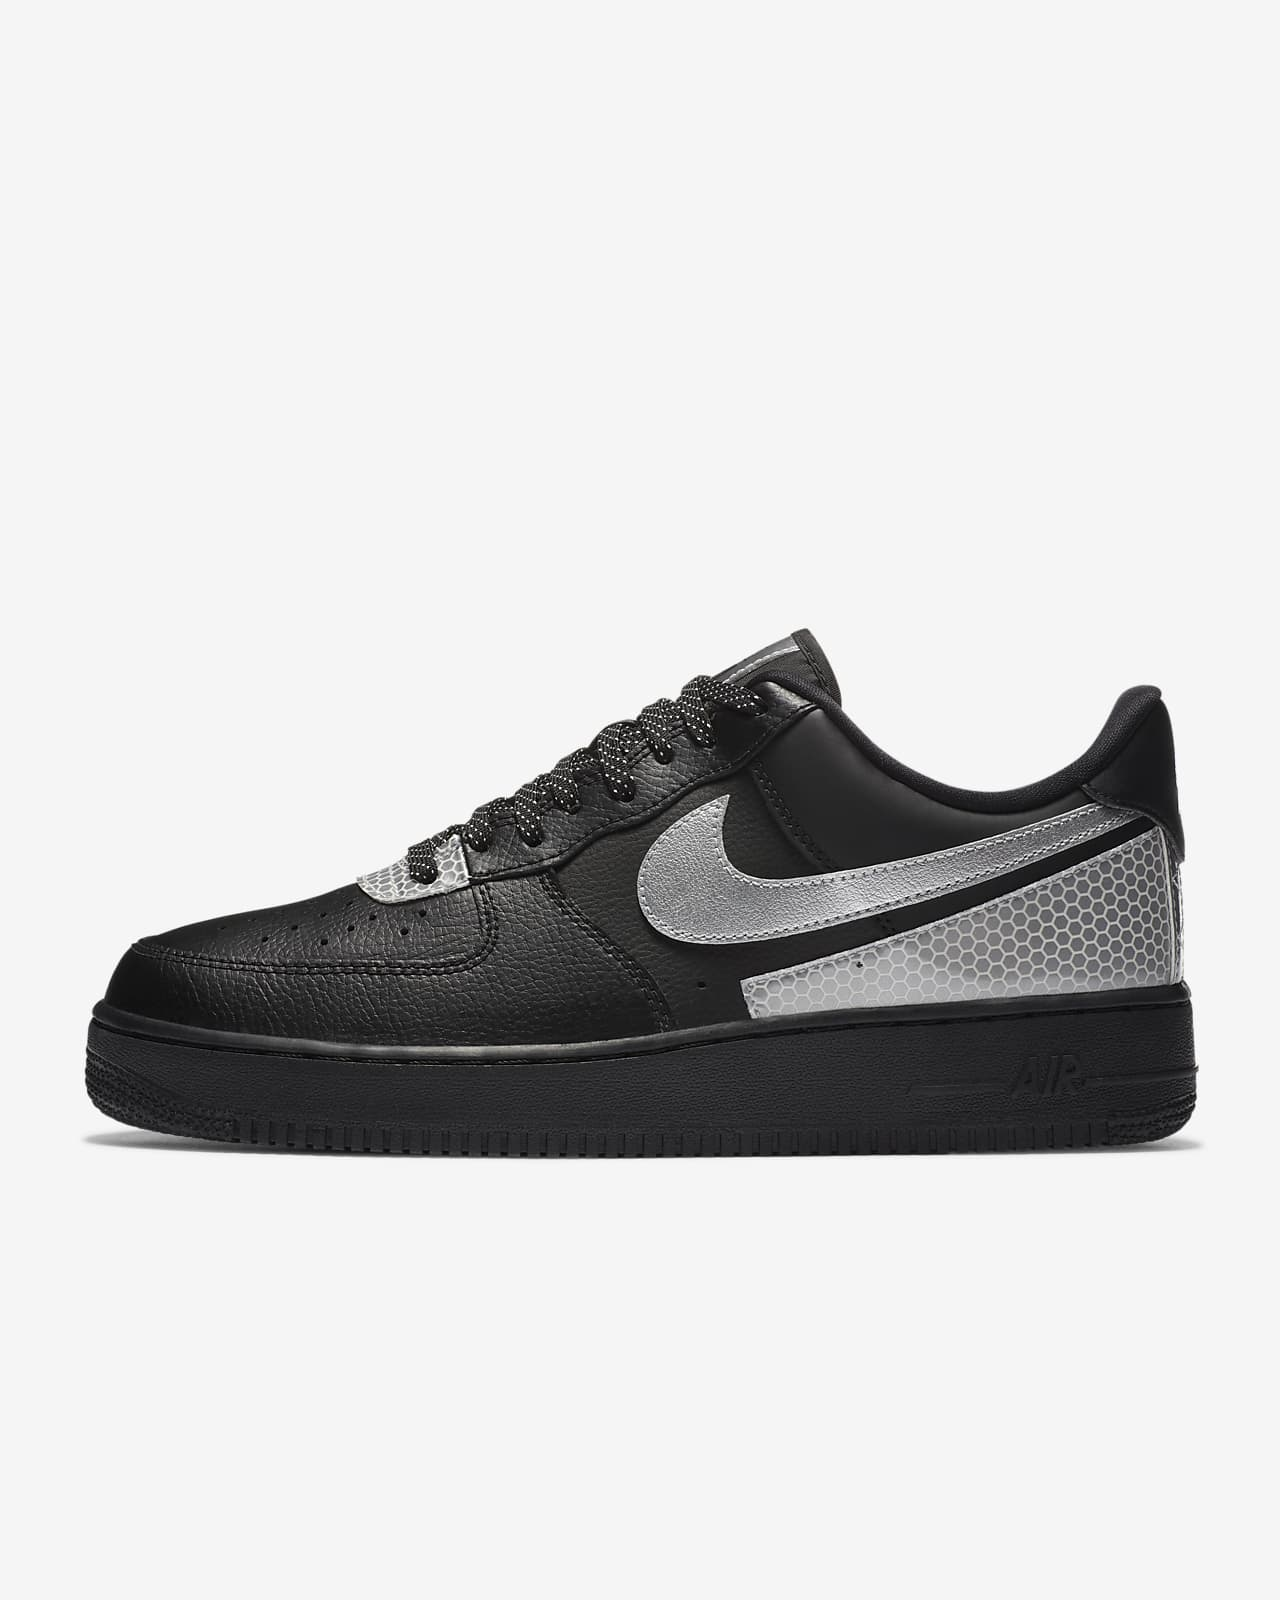 nike x air force 1 chaussures